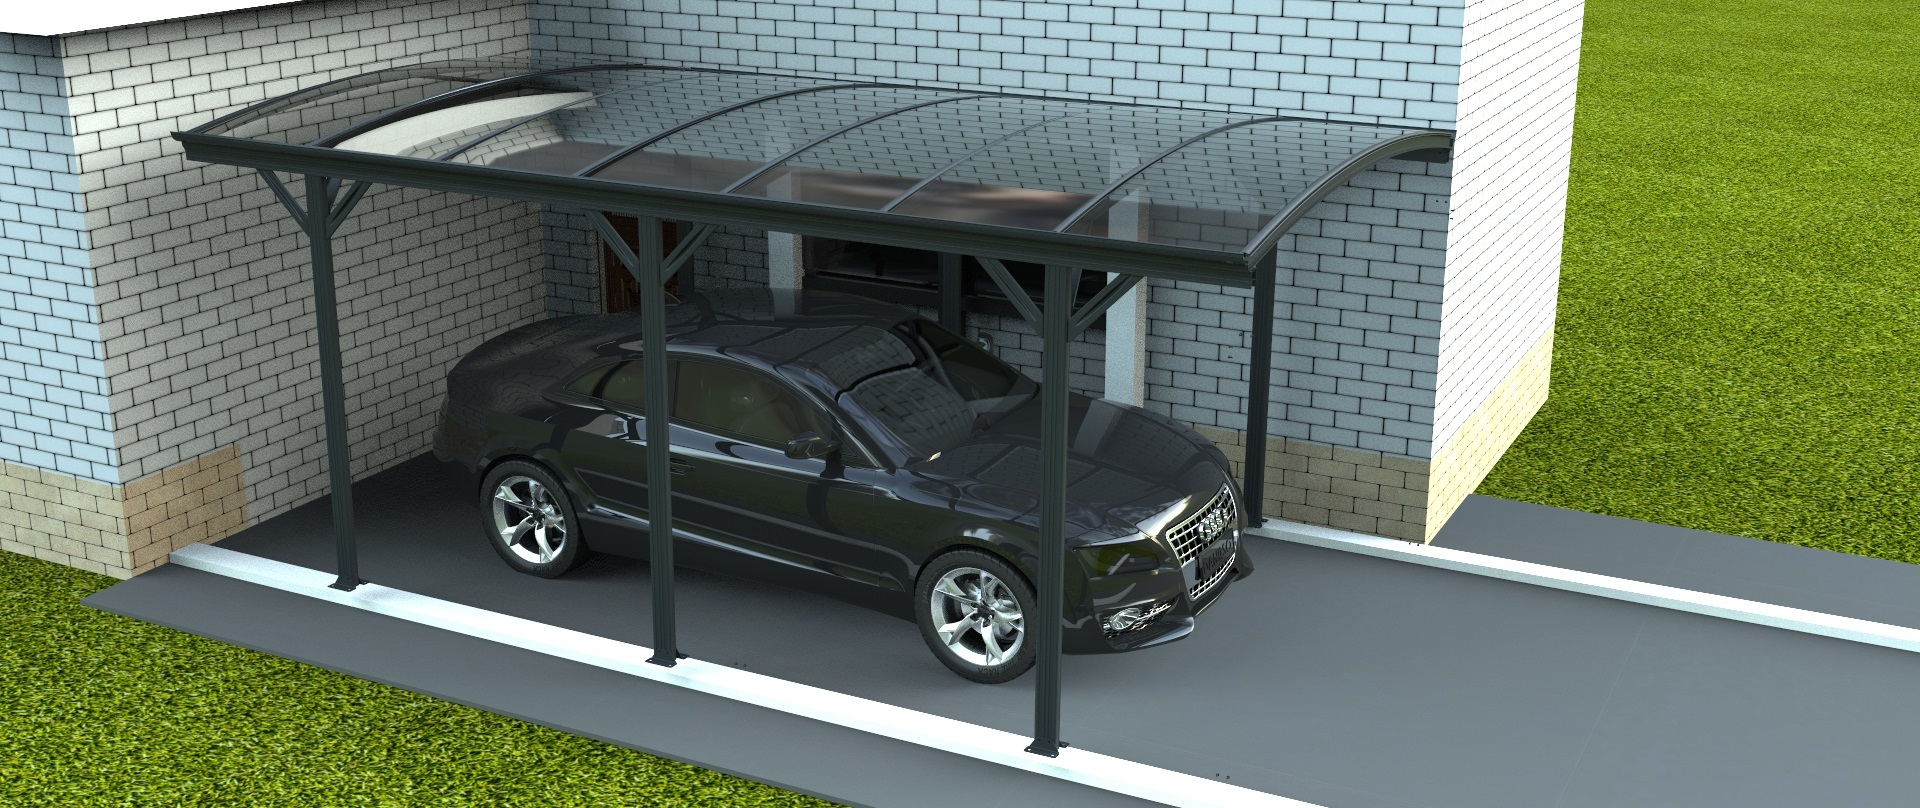 carport abri voiture 5x3 m anthracite abrirama cp7 abris de jardin bois carports camping car. Black Bedroom Furniture Sets. Home Design Ideas